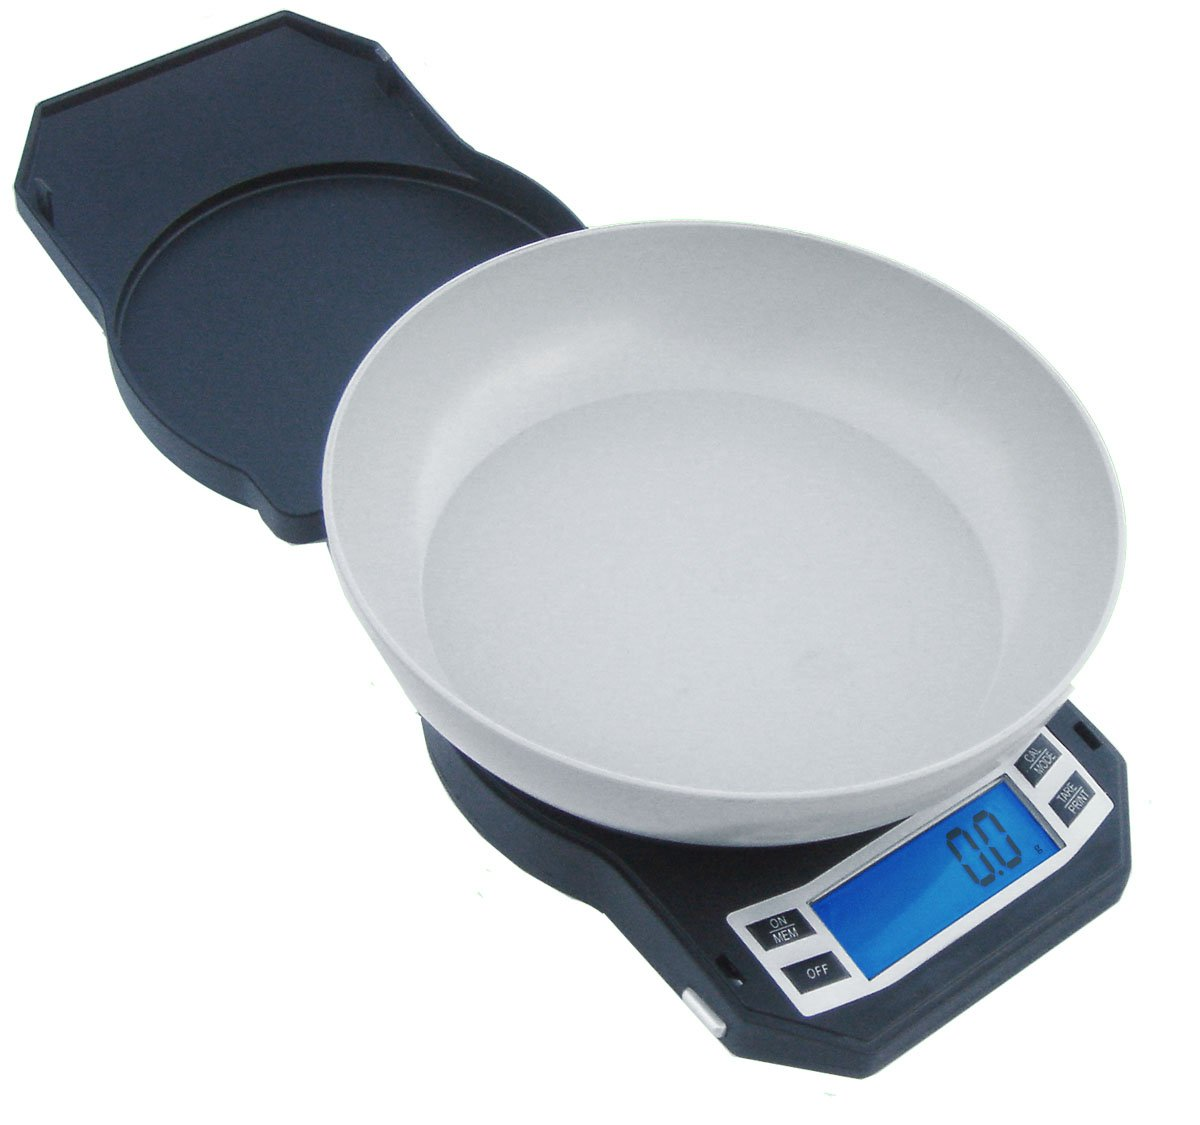 American Weigh Scales LB-3000 Digital Precision Weight Scale with Removable Bowl, 3000 x 0.1 G best coffee scale